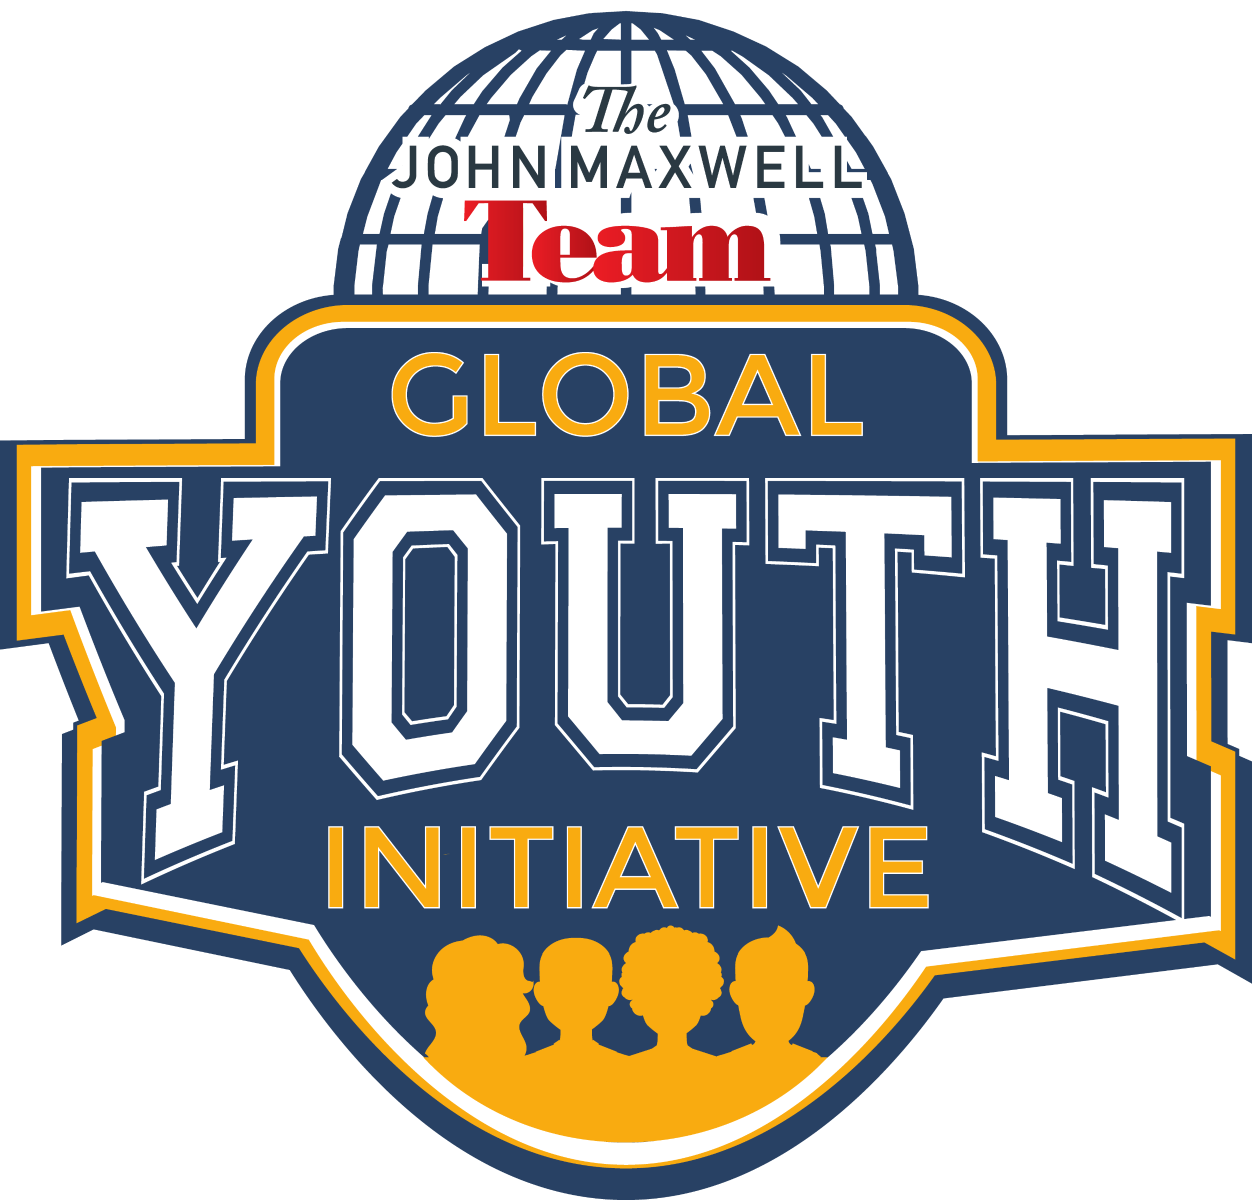 Global Youth Initiative